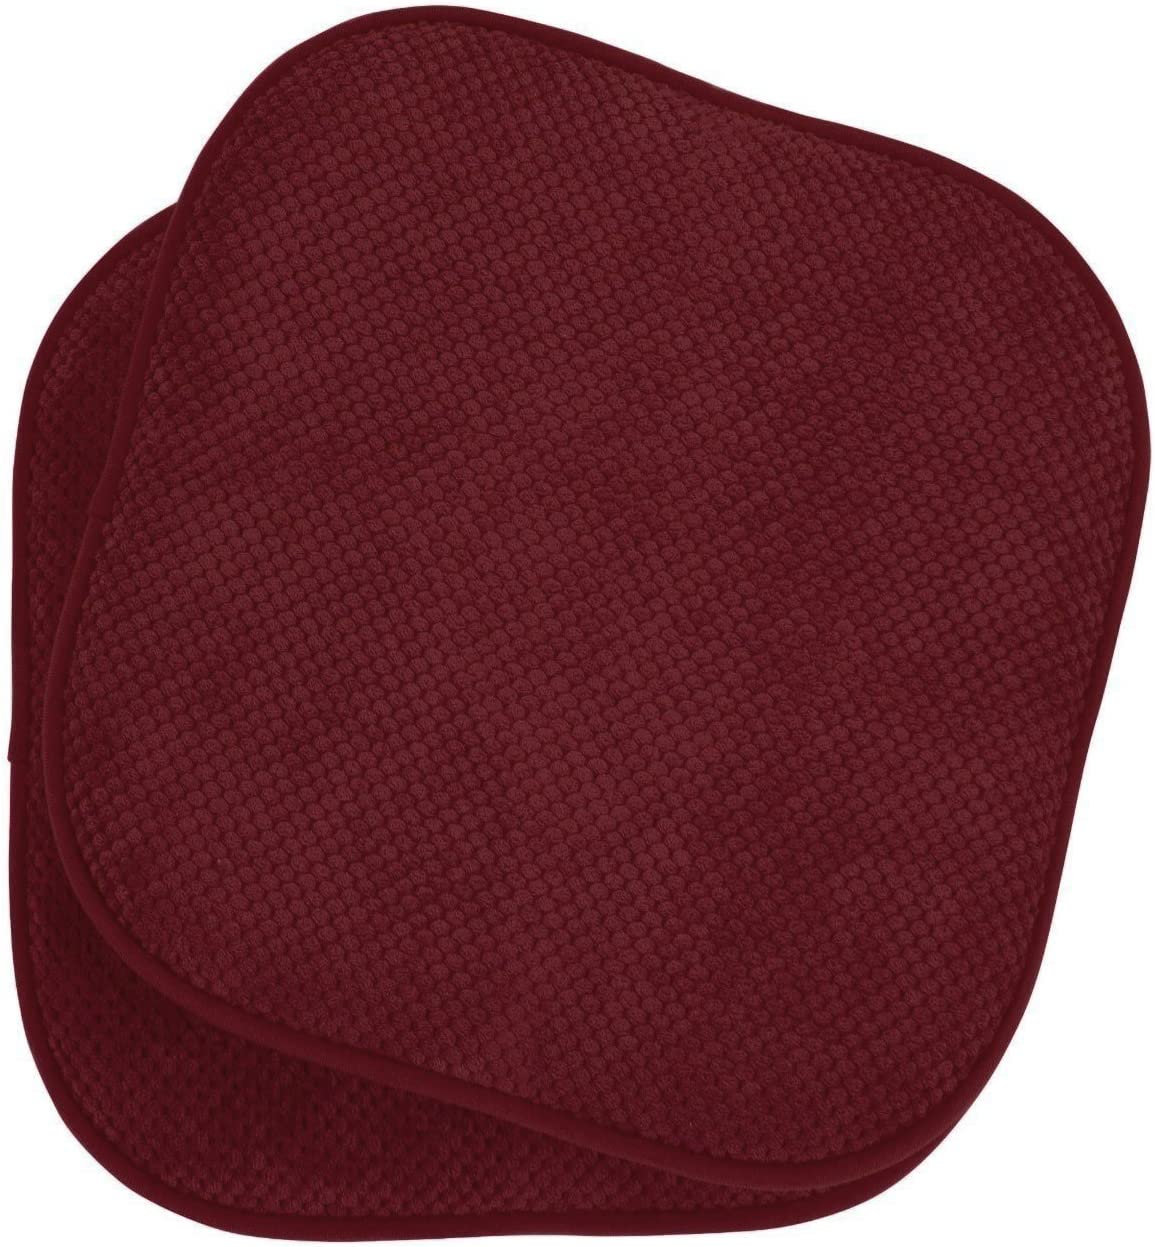 Assorted Colors Country Burgundy GoodGram 4 Pack Non Slip Ultra Soft Chenille Premium Comfort Memory Foam Chair Pads//Cushions